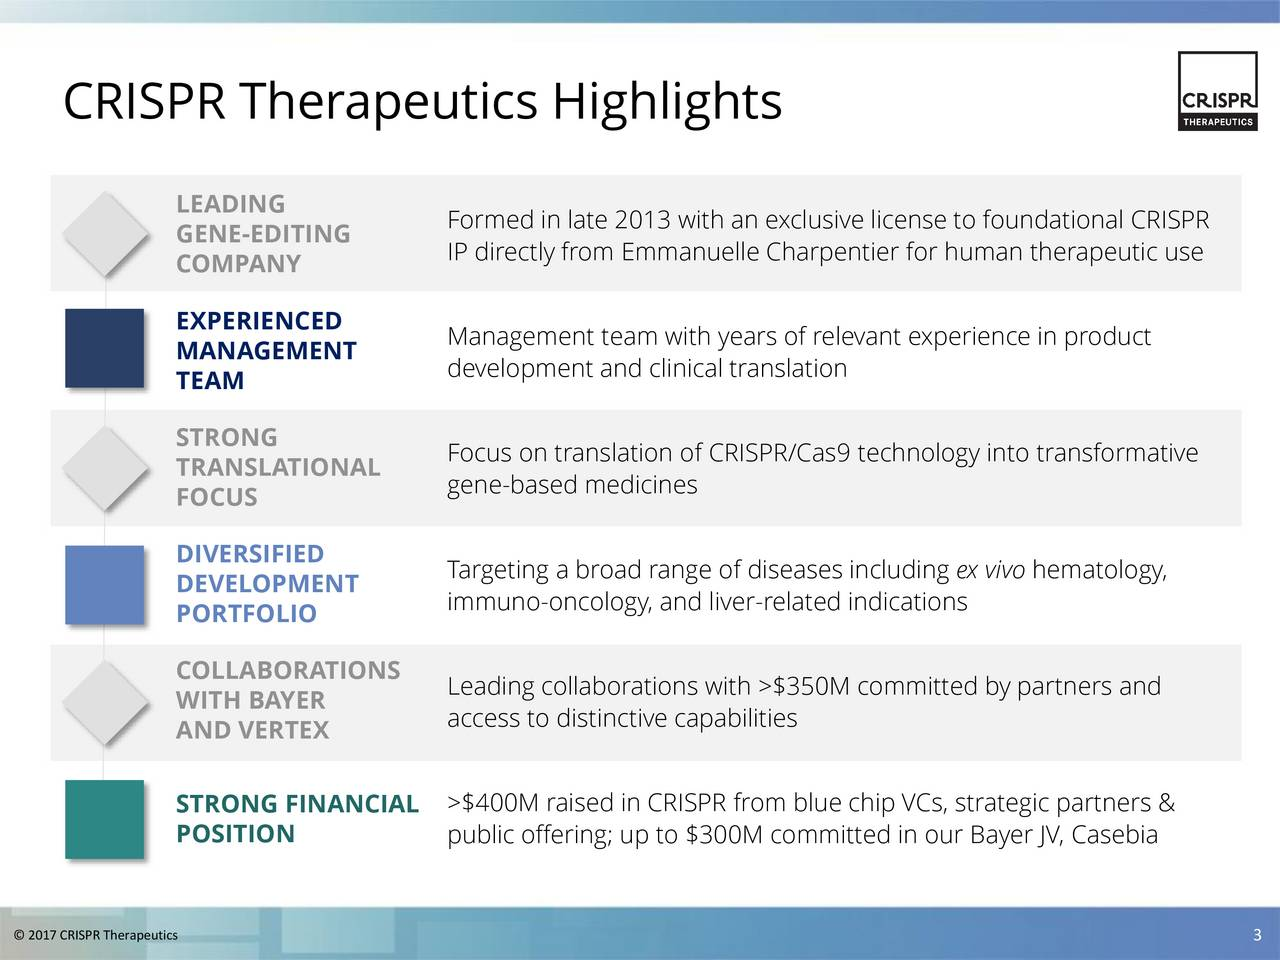 LEADING GENE-EDITING Formed in late 2013 with an exclusive license to foundational CRISPR COMPANY IP directly from Emmanuelle Charpentier for human therapeutic use EXPERIENCED Management team with years of relevant experience in product MANAGEMENT TEAM development and clinical translation STRONG Focus on translation of CRISPR/Cas9 technology into transformative TRANSLATIONAL FOCUS gene-based medicines DIVERSIFIED Targeting a broad range of diseases including ex vivo hematology, DEVELOPMENT immuno-oncology, and liver-related indications PORTFOLIO COLLABORATIONS Leading collaborations with >$350M committed by partners and WITH BAYER access to distinctive capabilities AND VERTEX STRONG FINANCIAL >$400M raised in CRISPR from blue chip VCs, strategic partners & POSITION public offering; up to $300M committed in our Bayer JV, Casebia 2017 CRISPR Therapeutics 3